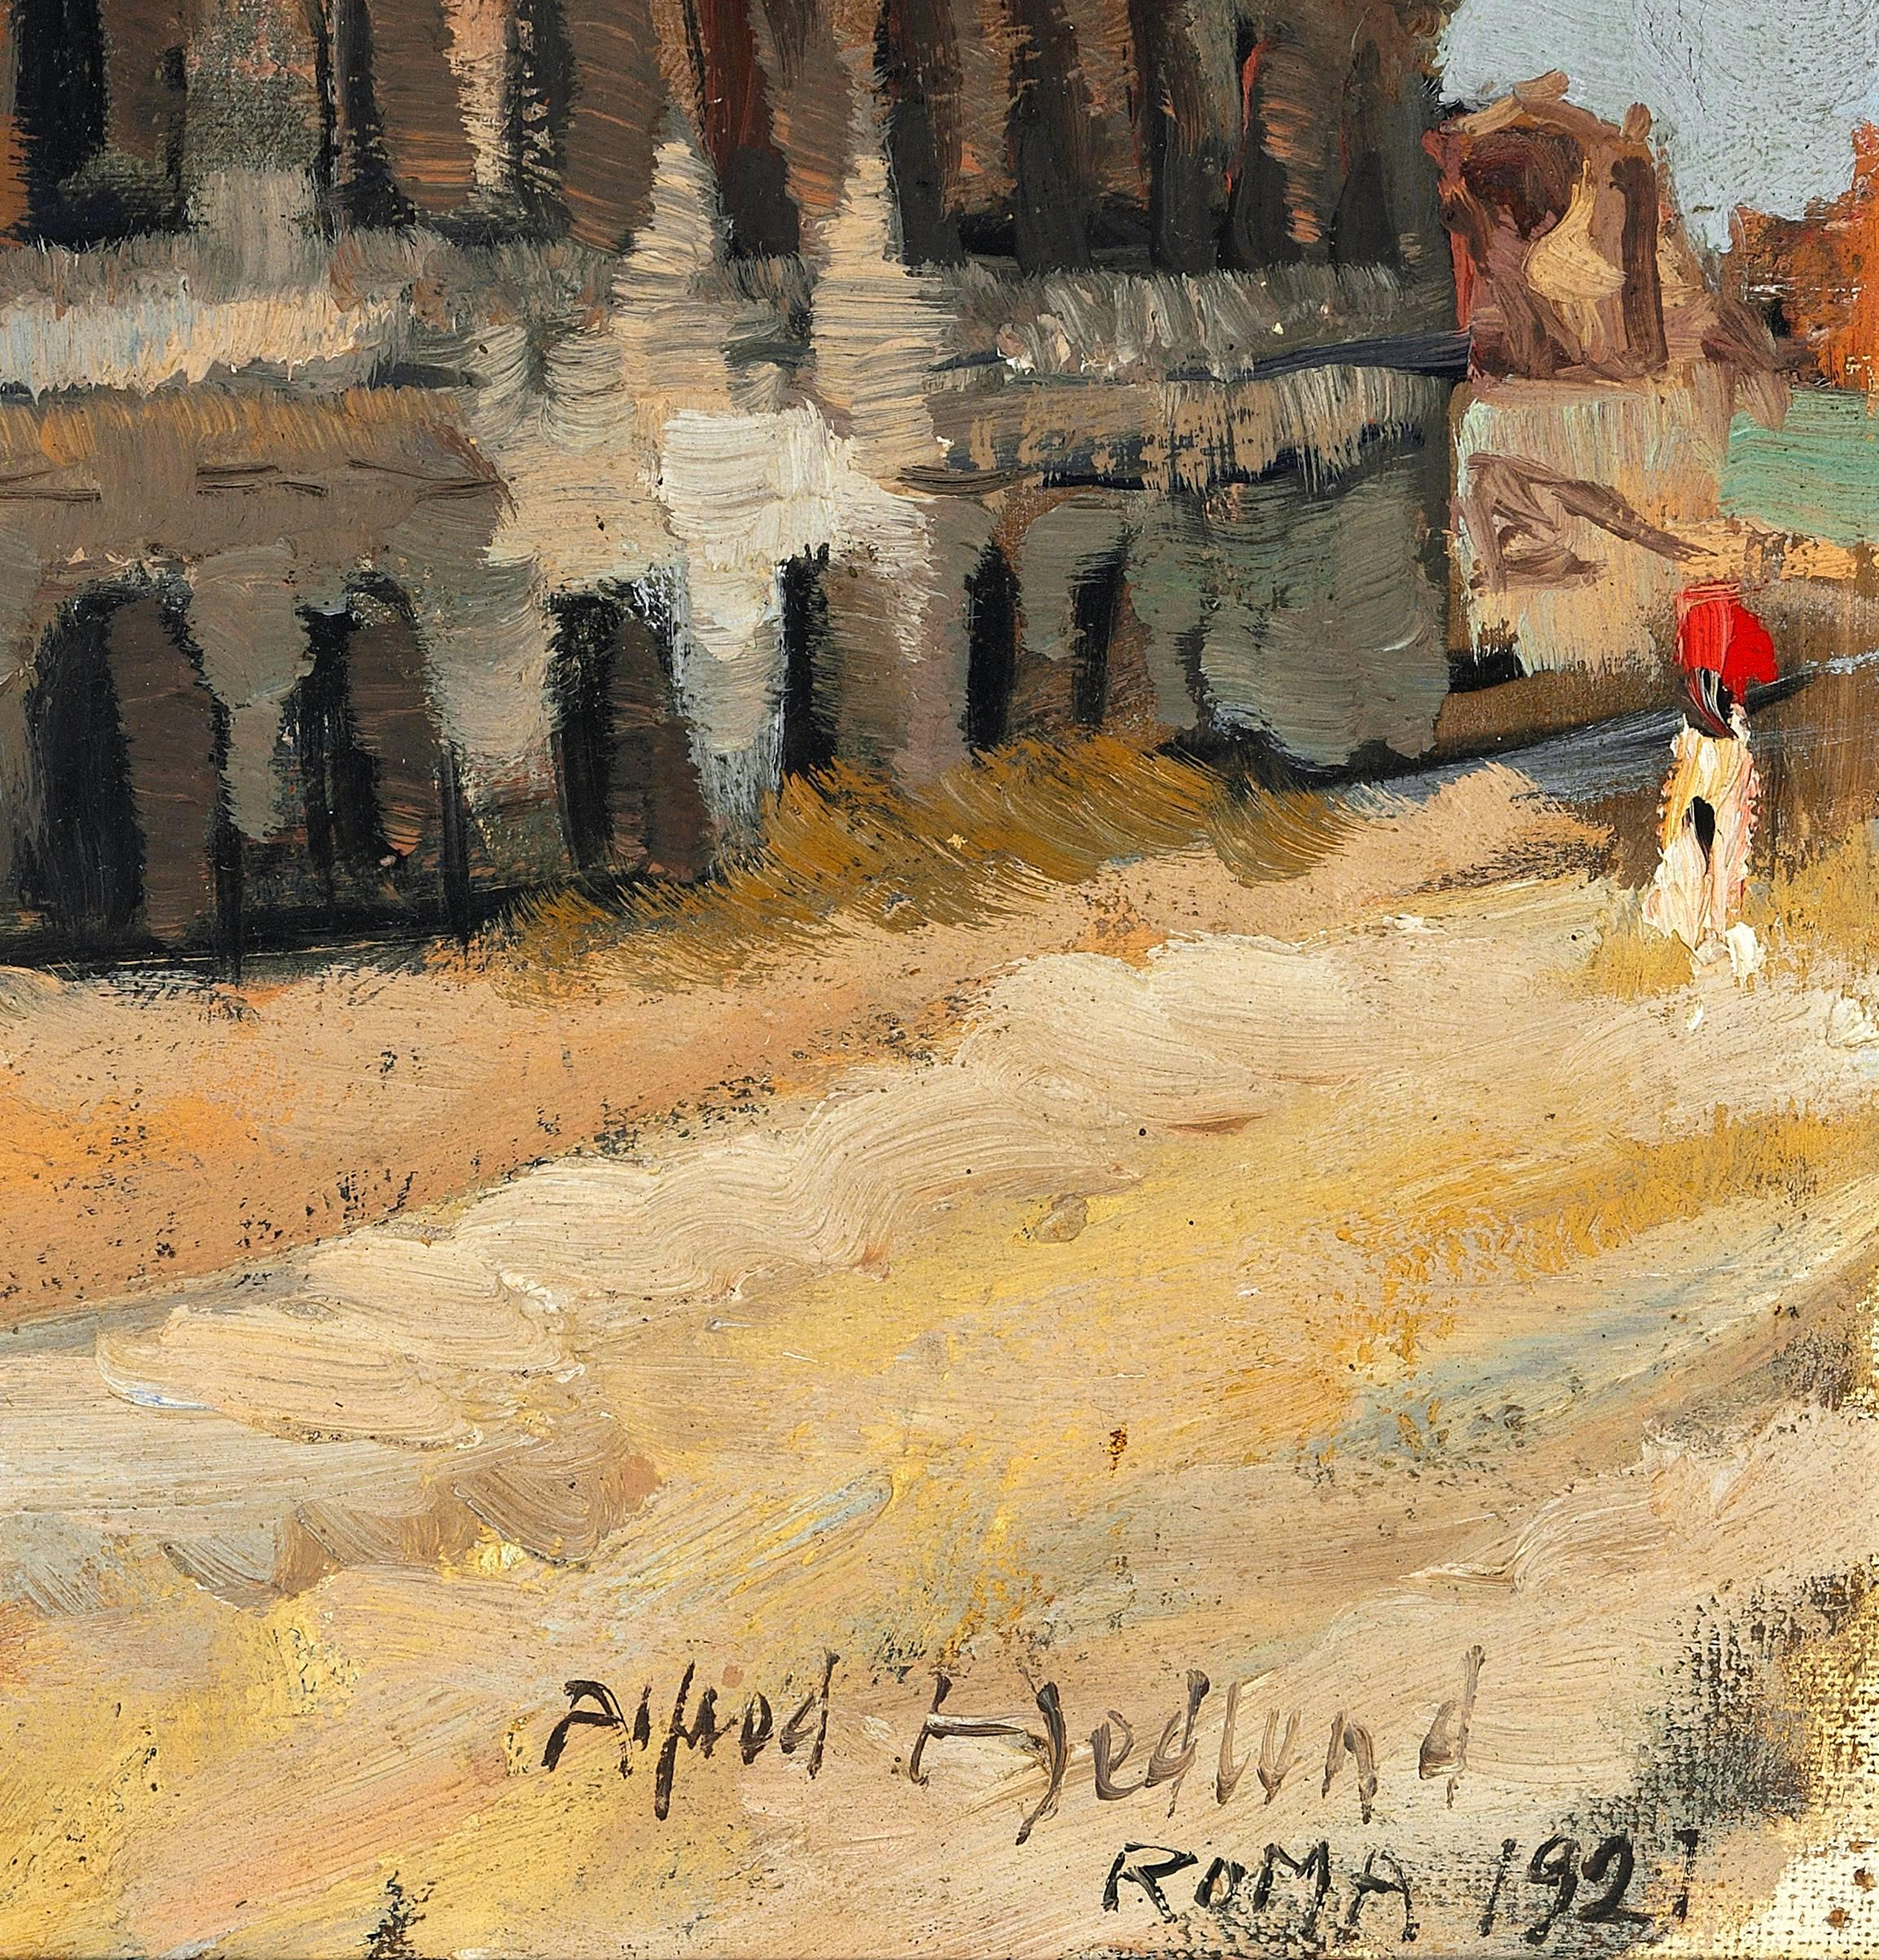 Alfred Hedlund - - The Colosseum in Rome, Painting For Sale at 1stdibs